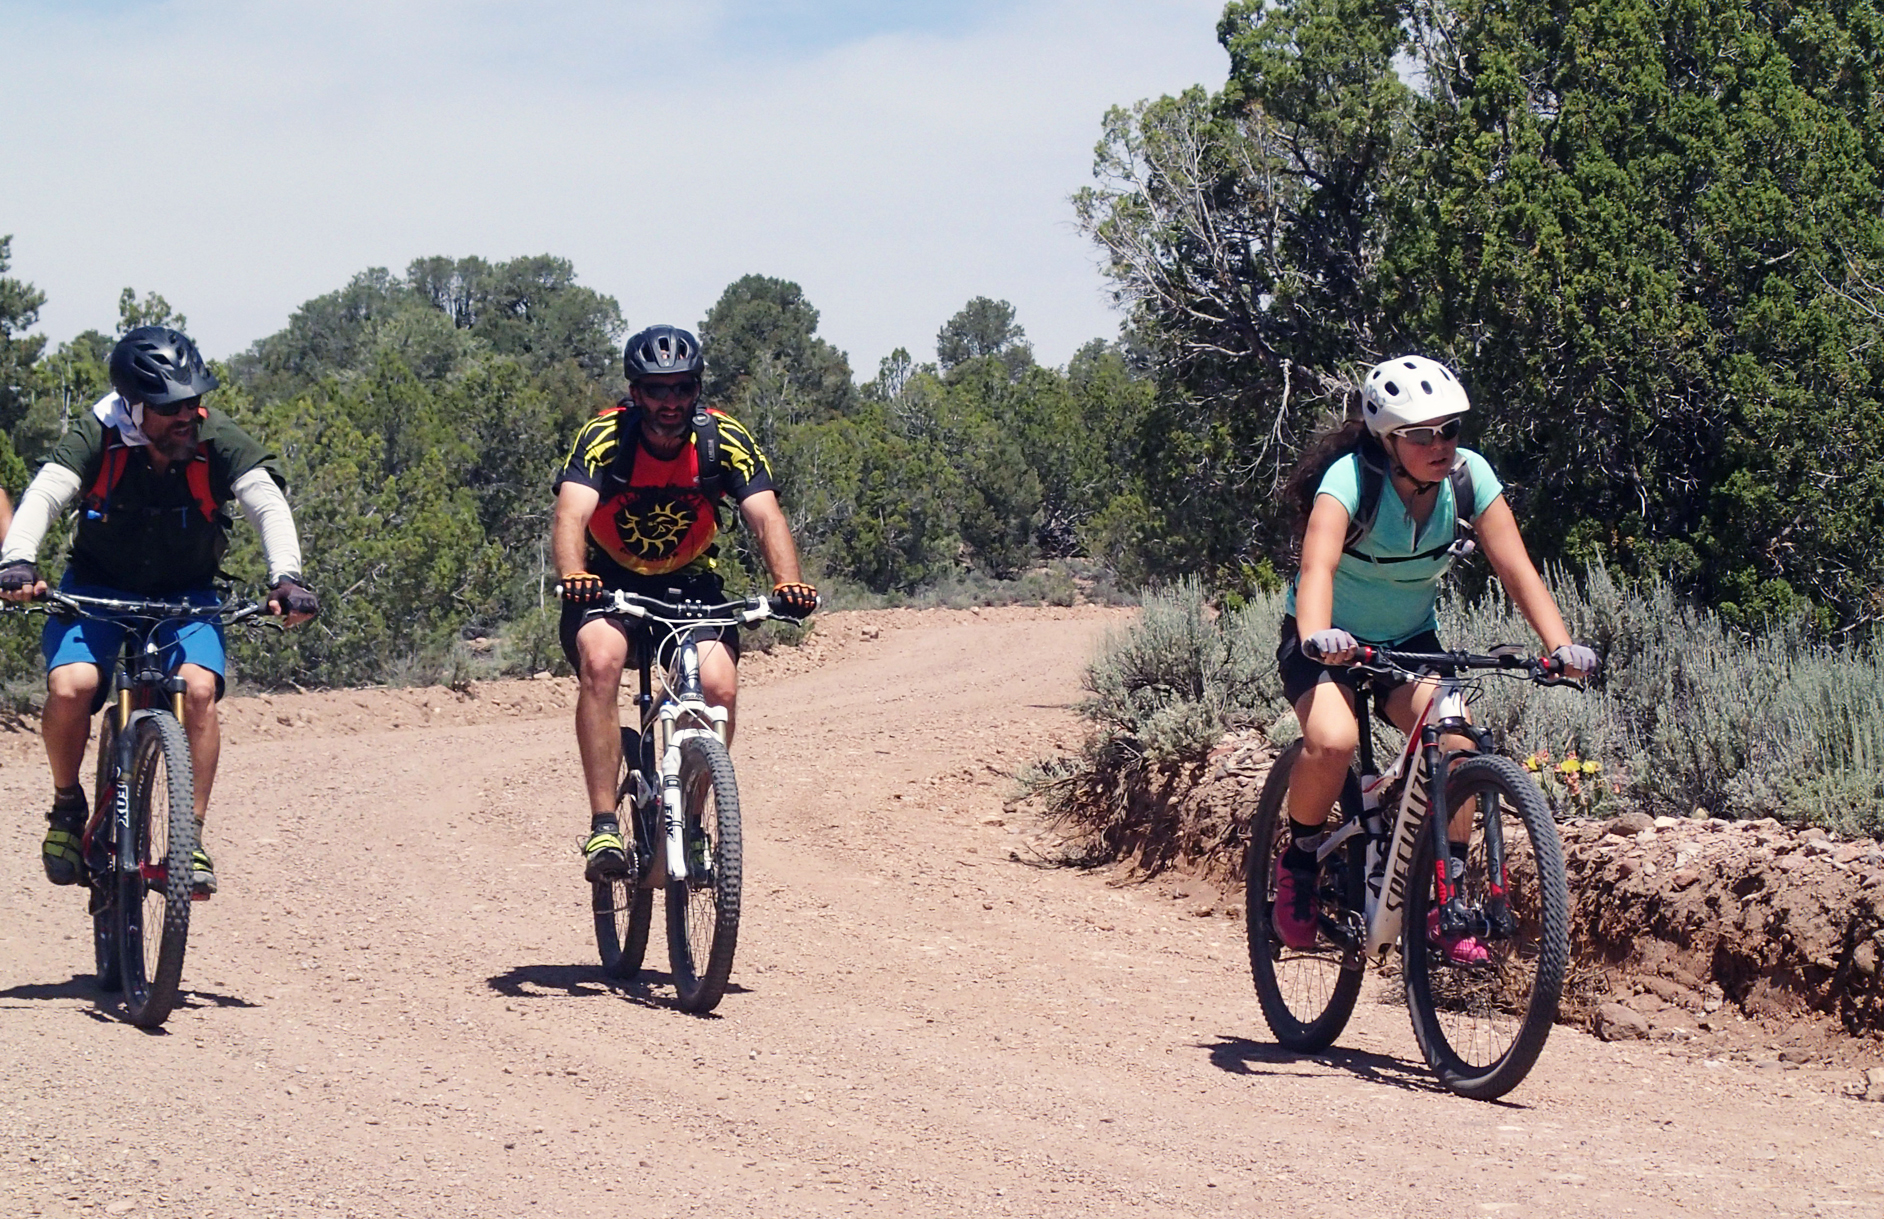 Gravel Grinder growing in popularity